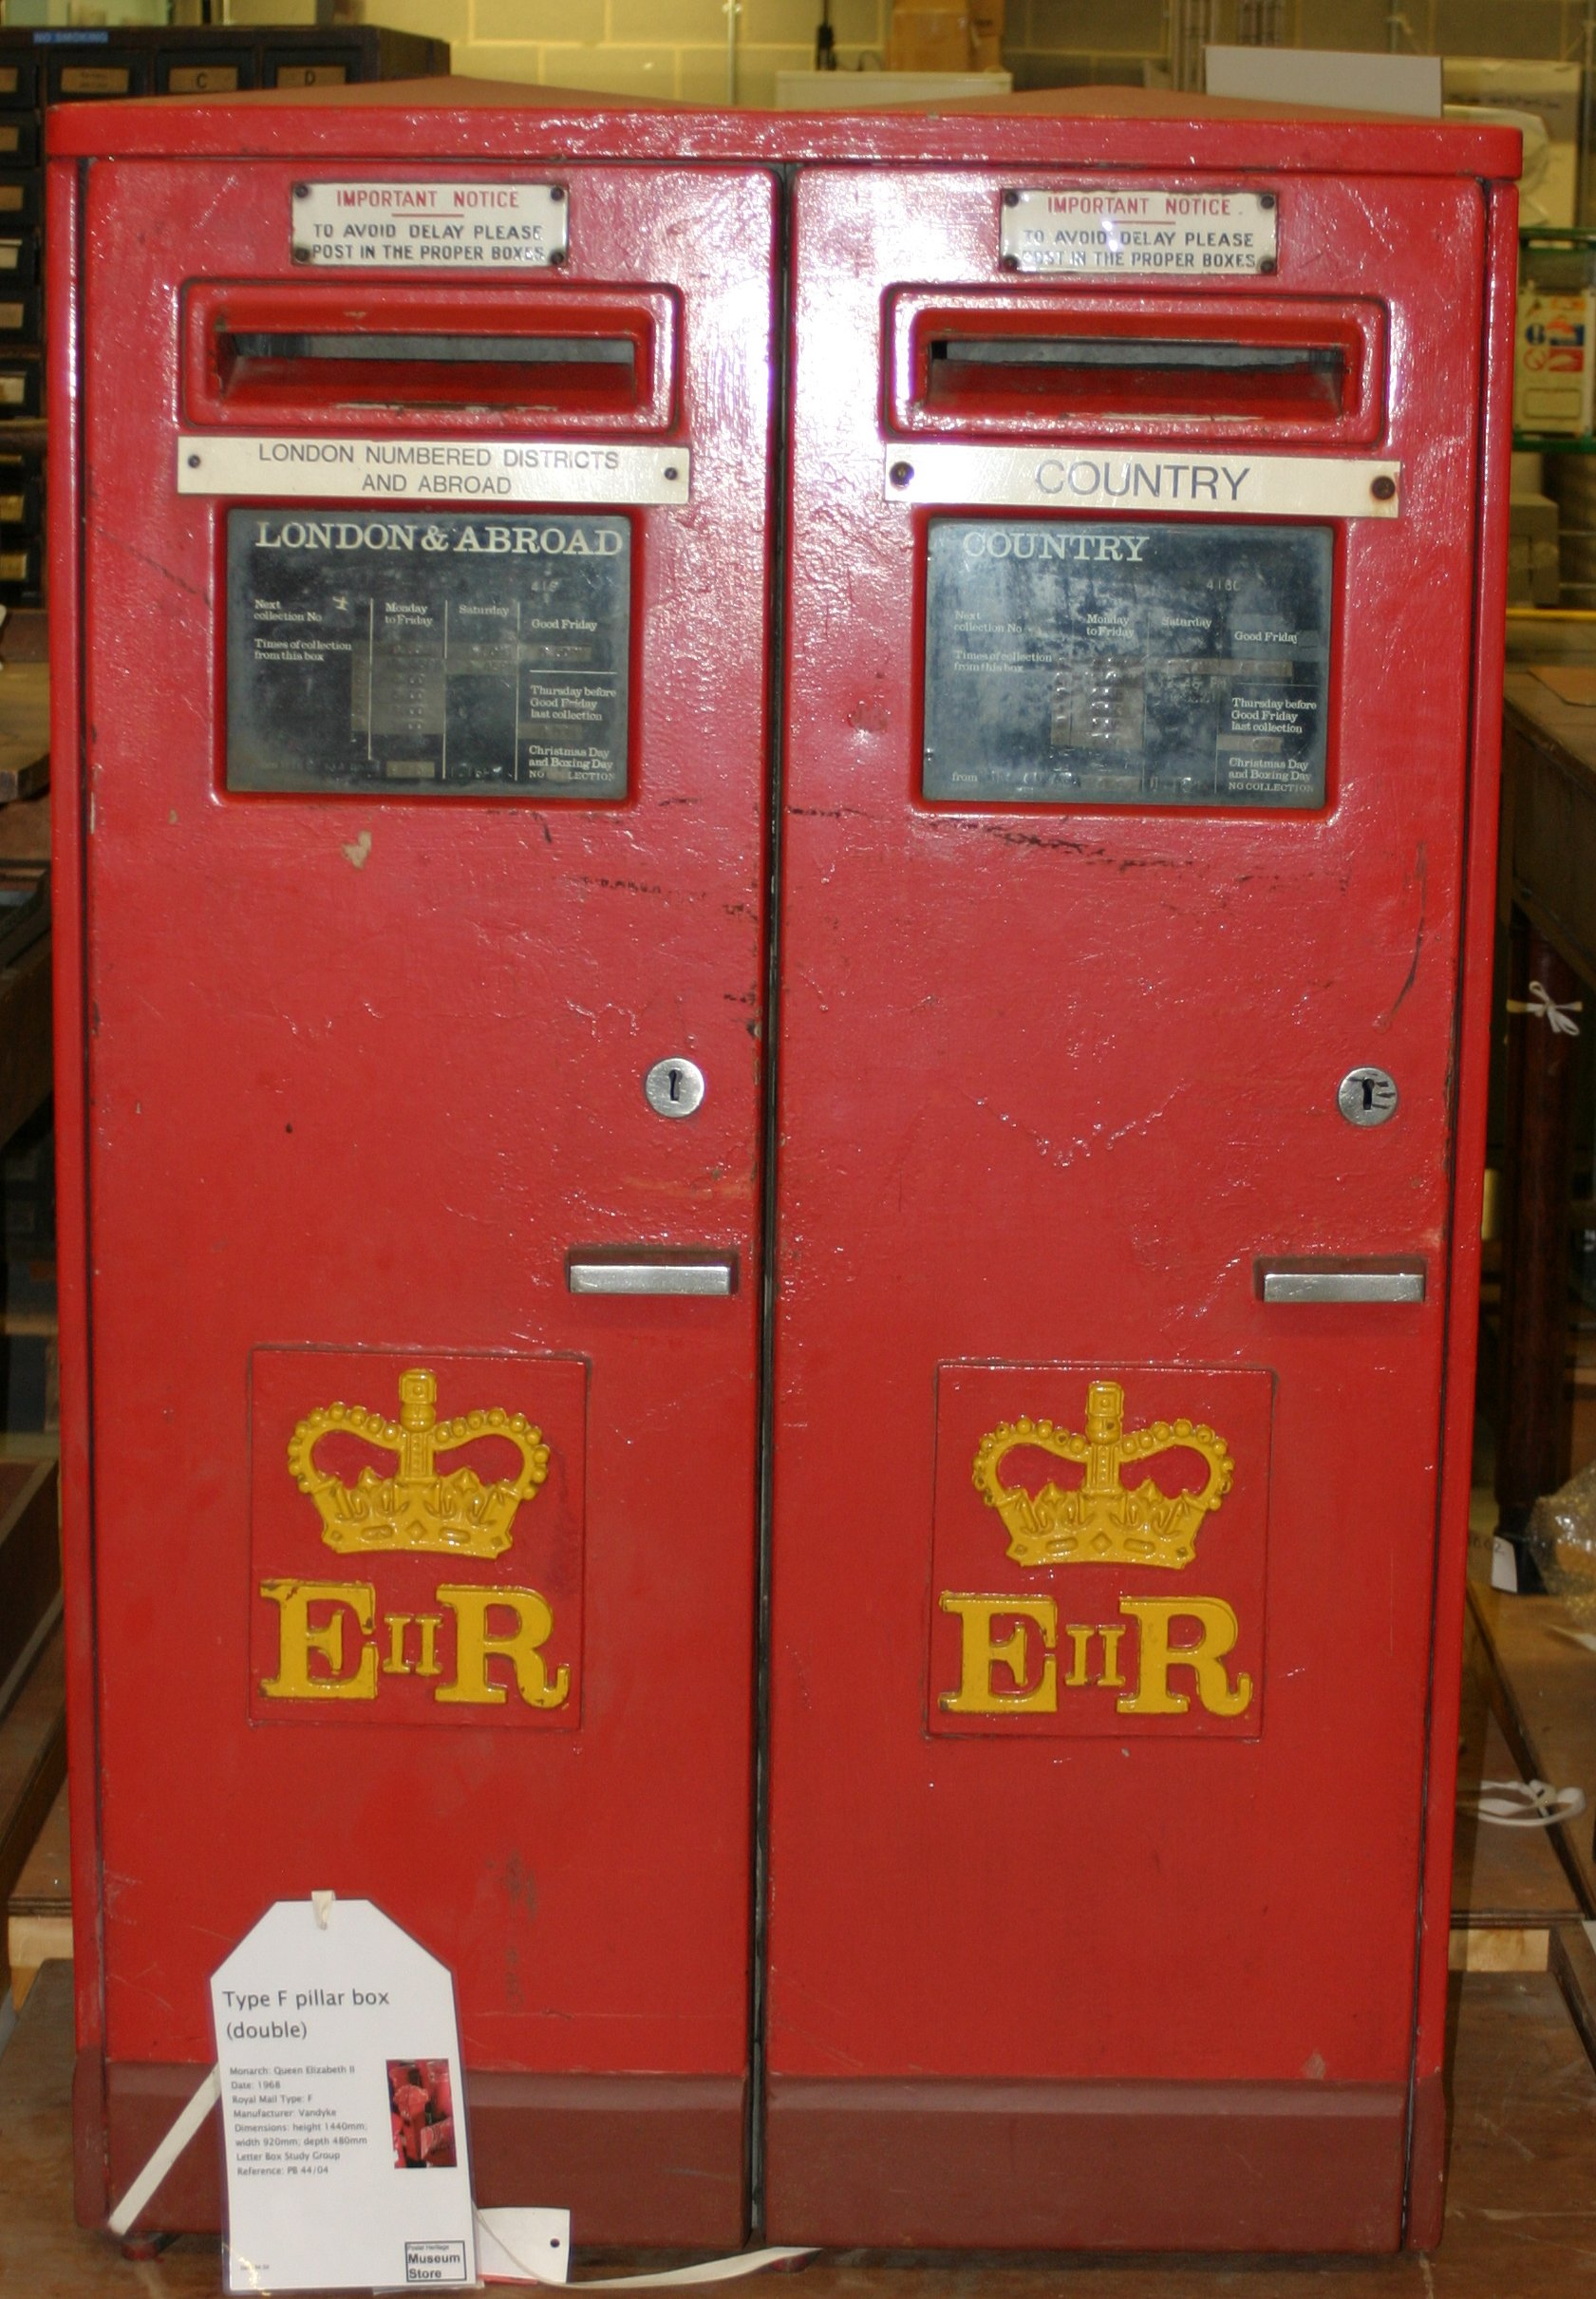 A rare double Type F pillar box by Vandyke Engineering (1968) at the BPMA Store, Debden, Essex. Photo taken on July 14, 2005.